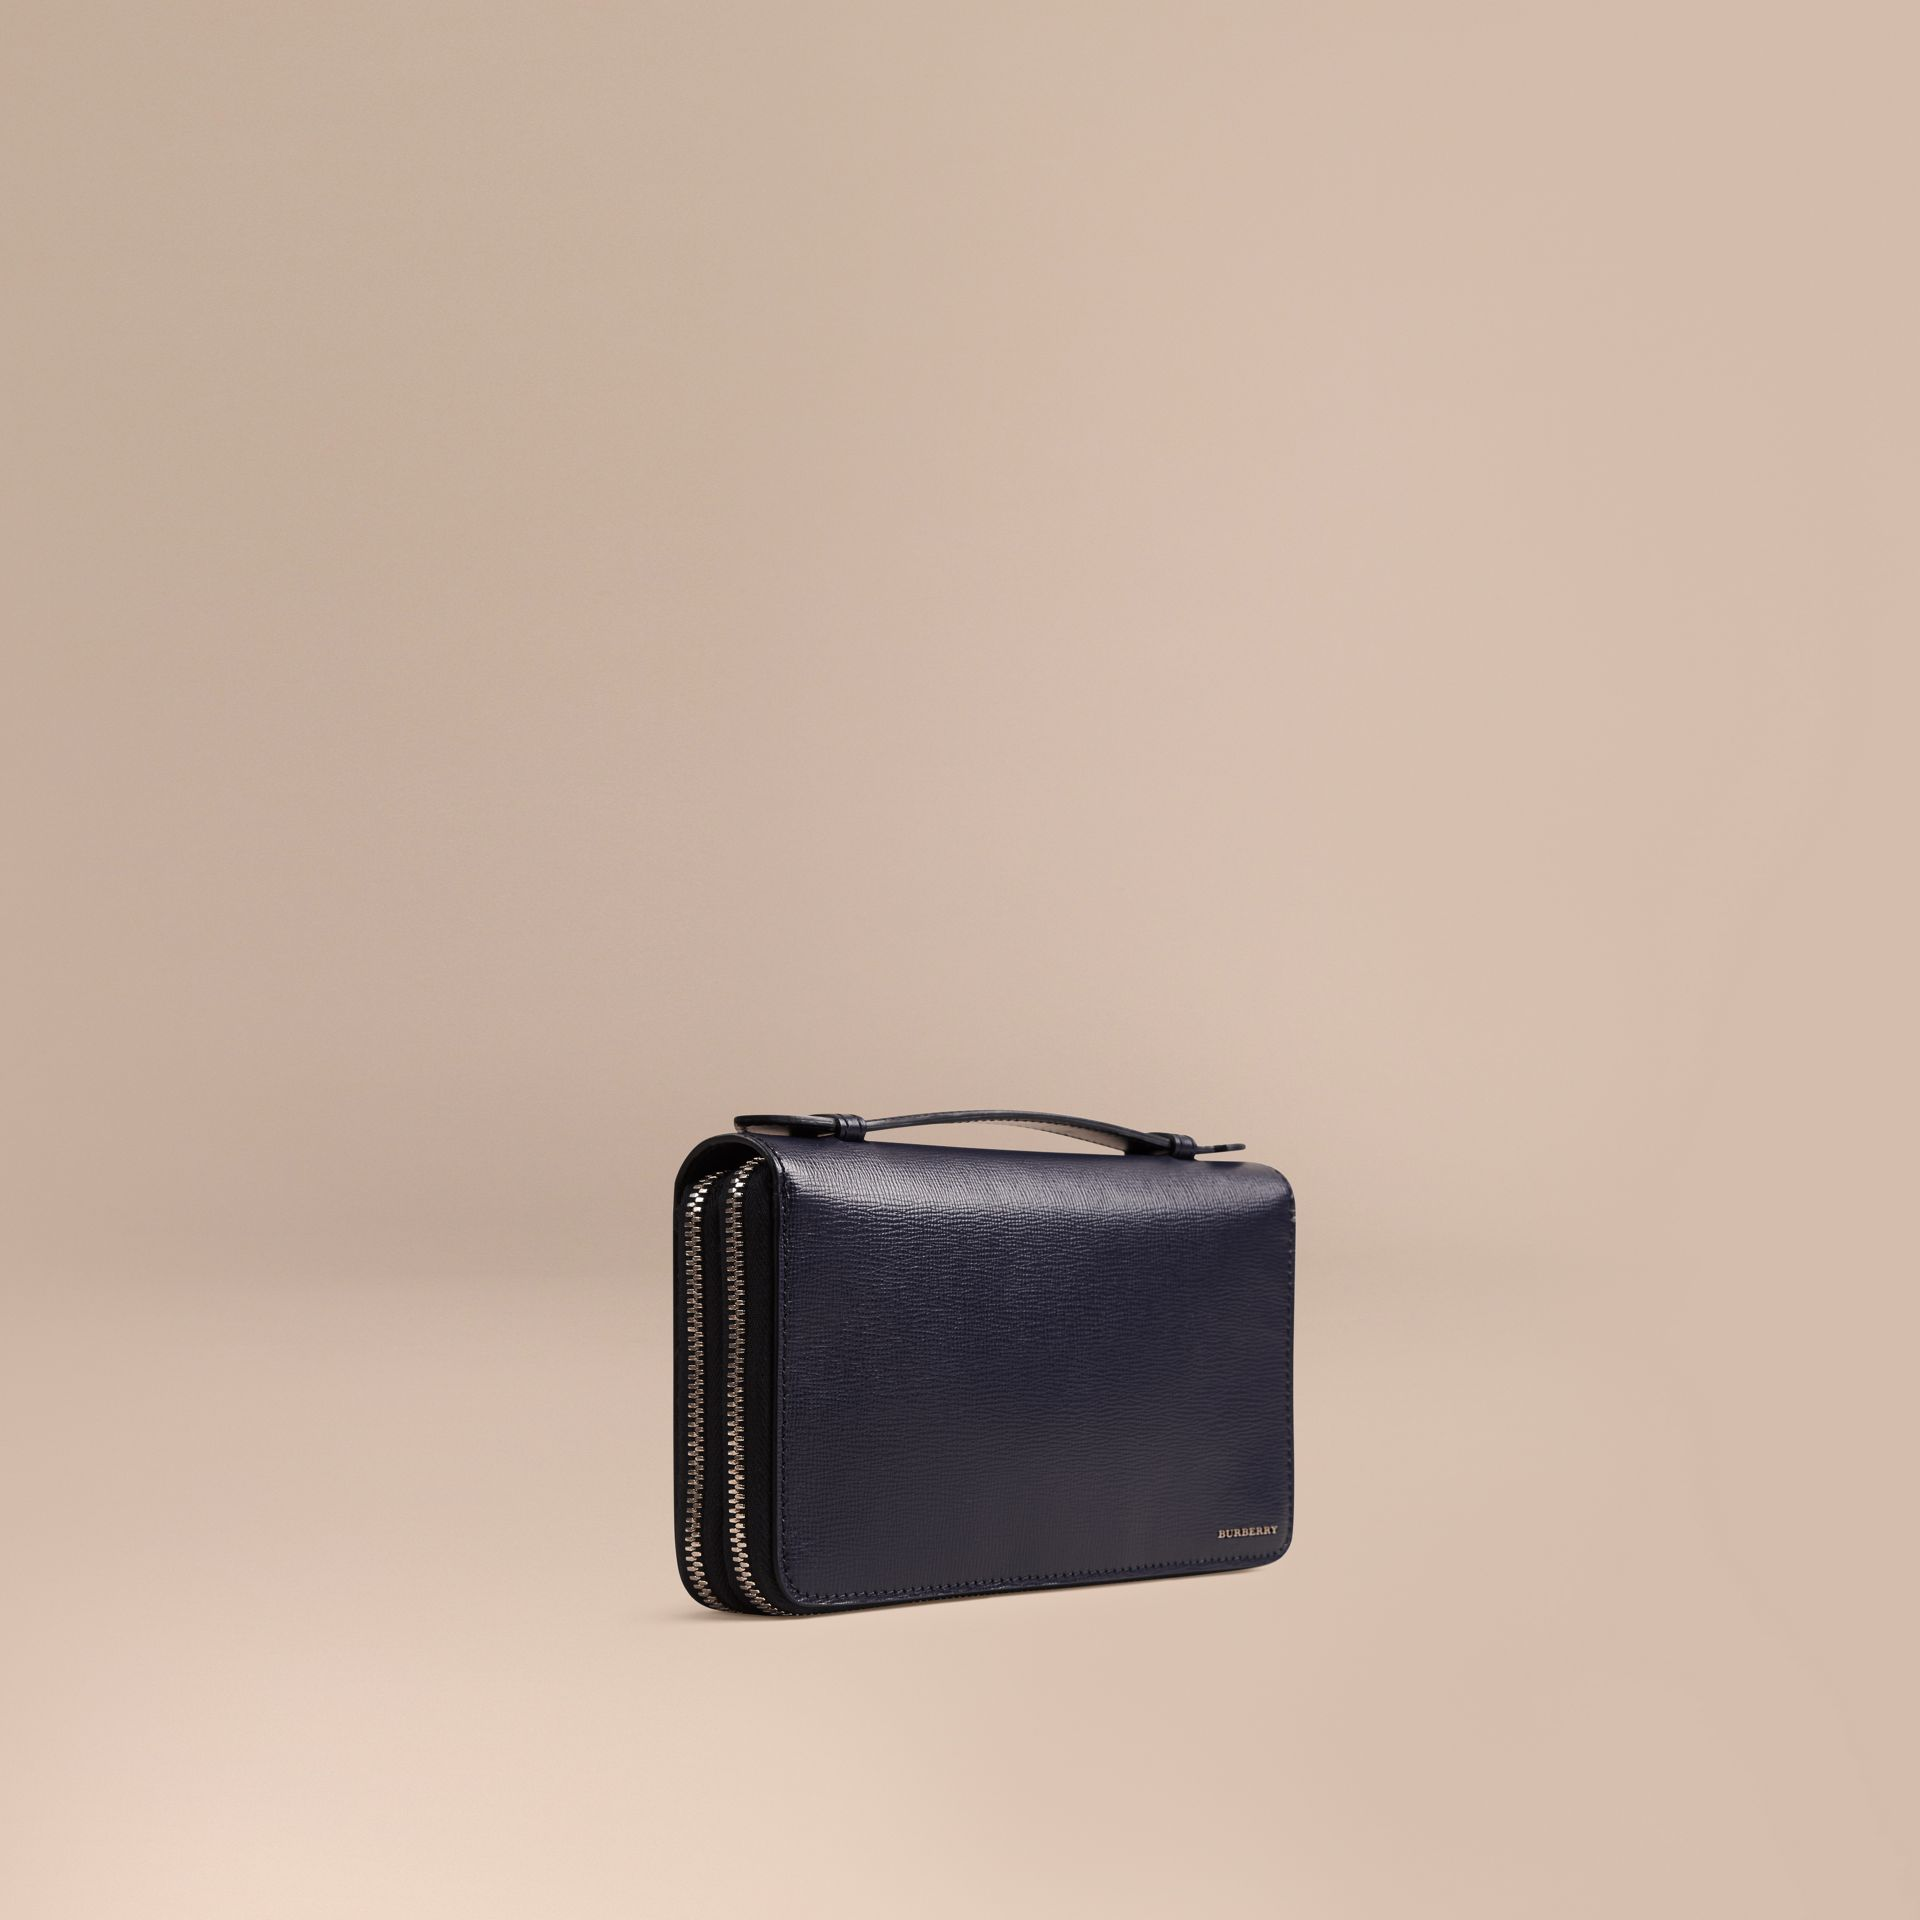 London Leather Travel Wallet in Dark Navy - Men | Burberry Singapore - gallery image 1